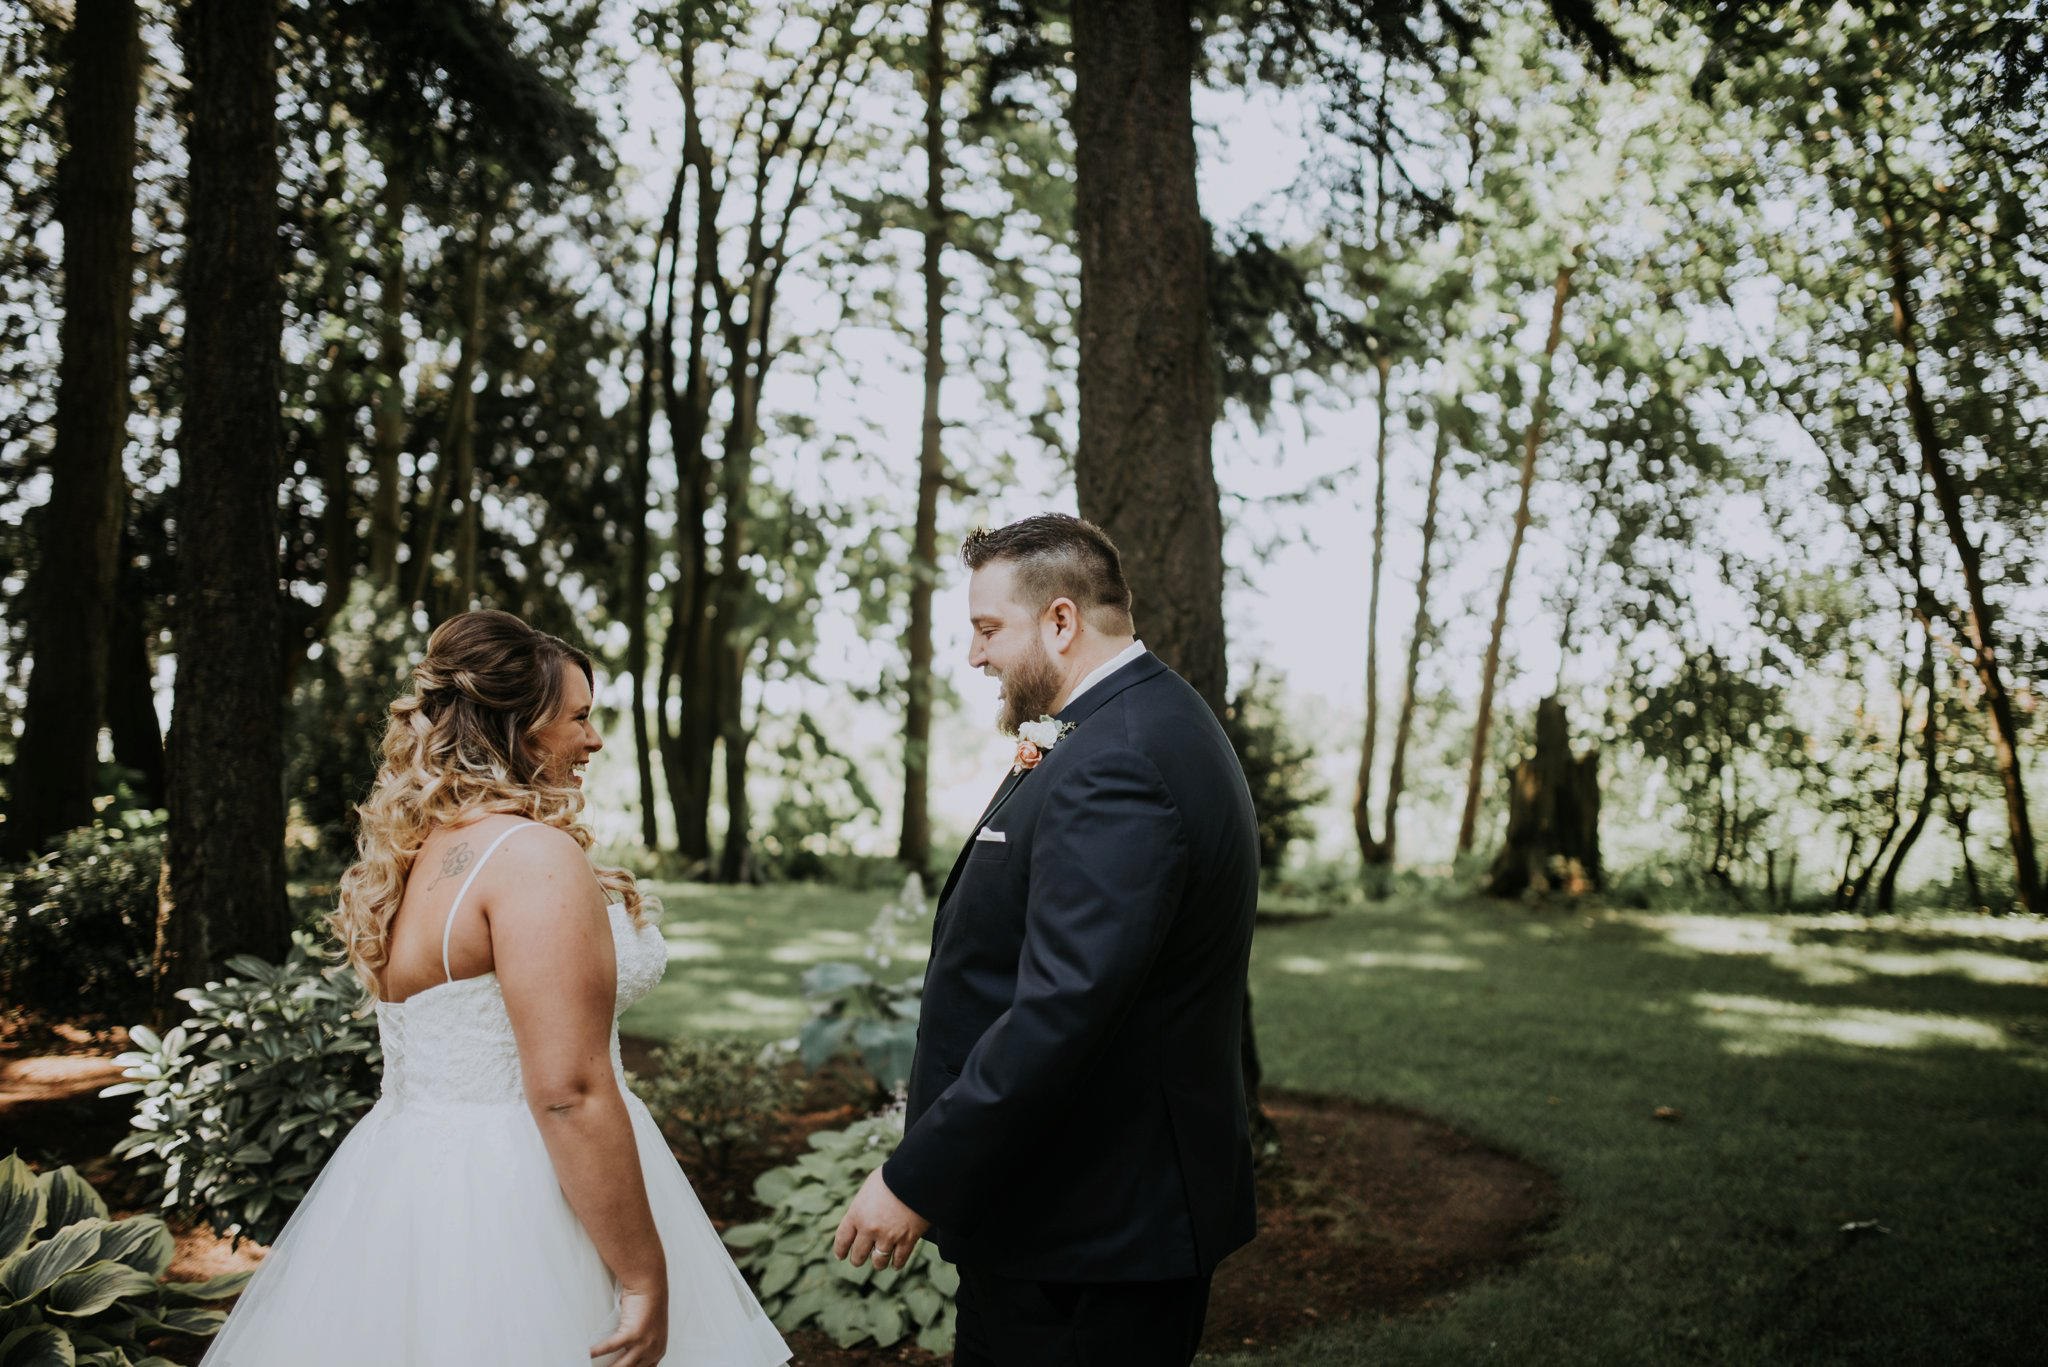 evergreen-gardens-bellingham-wedding-seattle-photographer-caitlyn-nikula-32.jpg